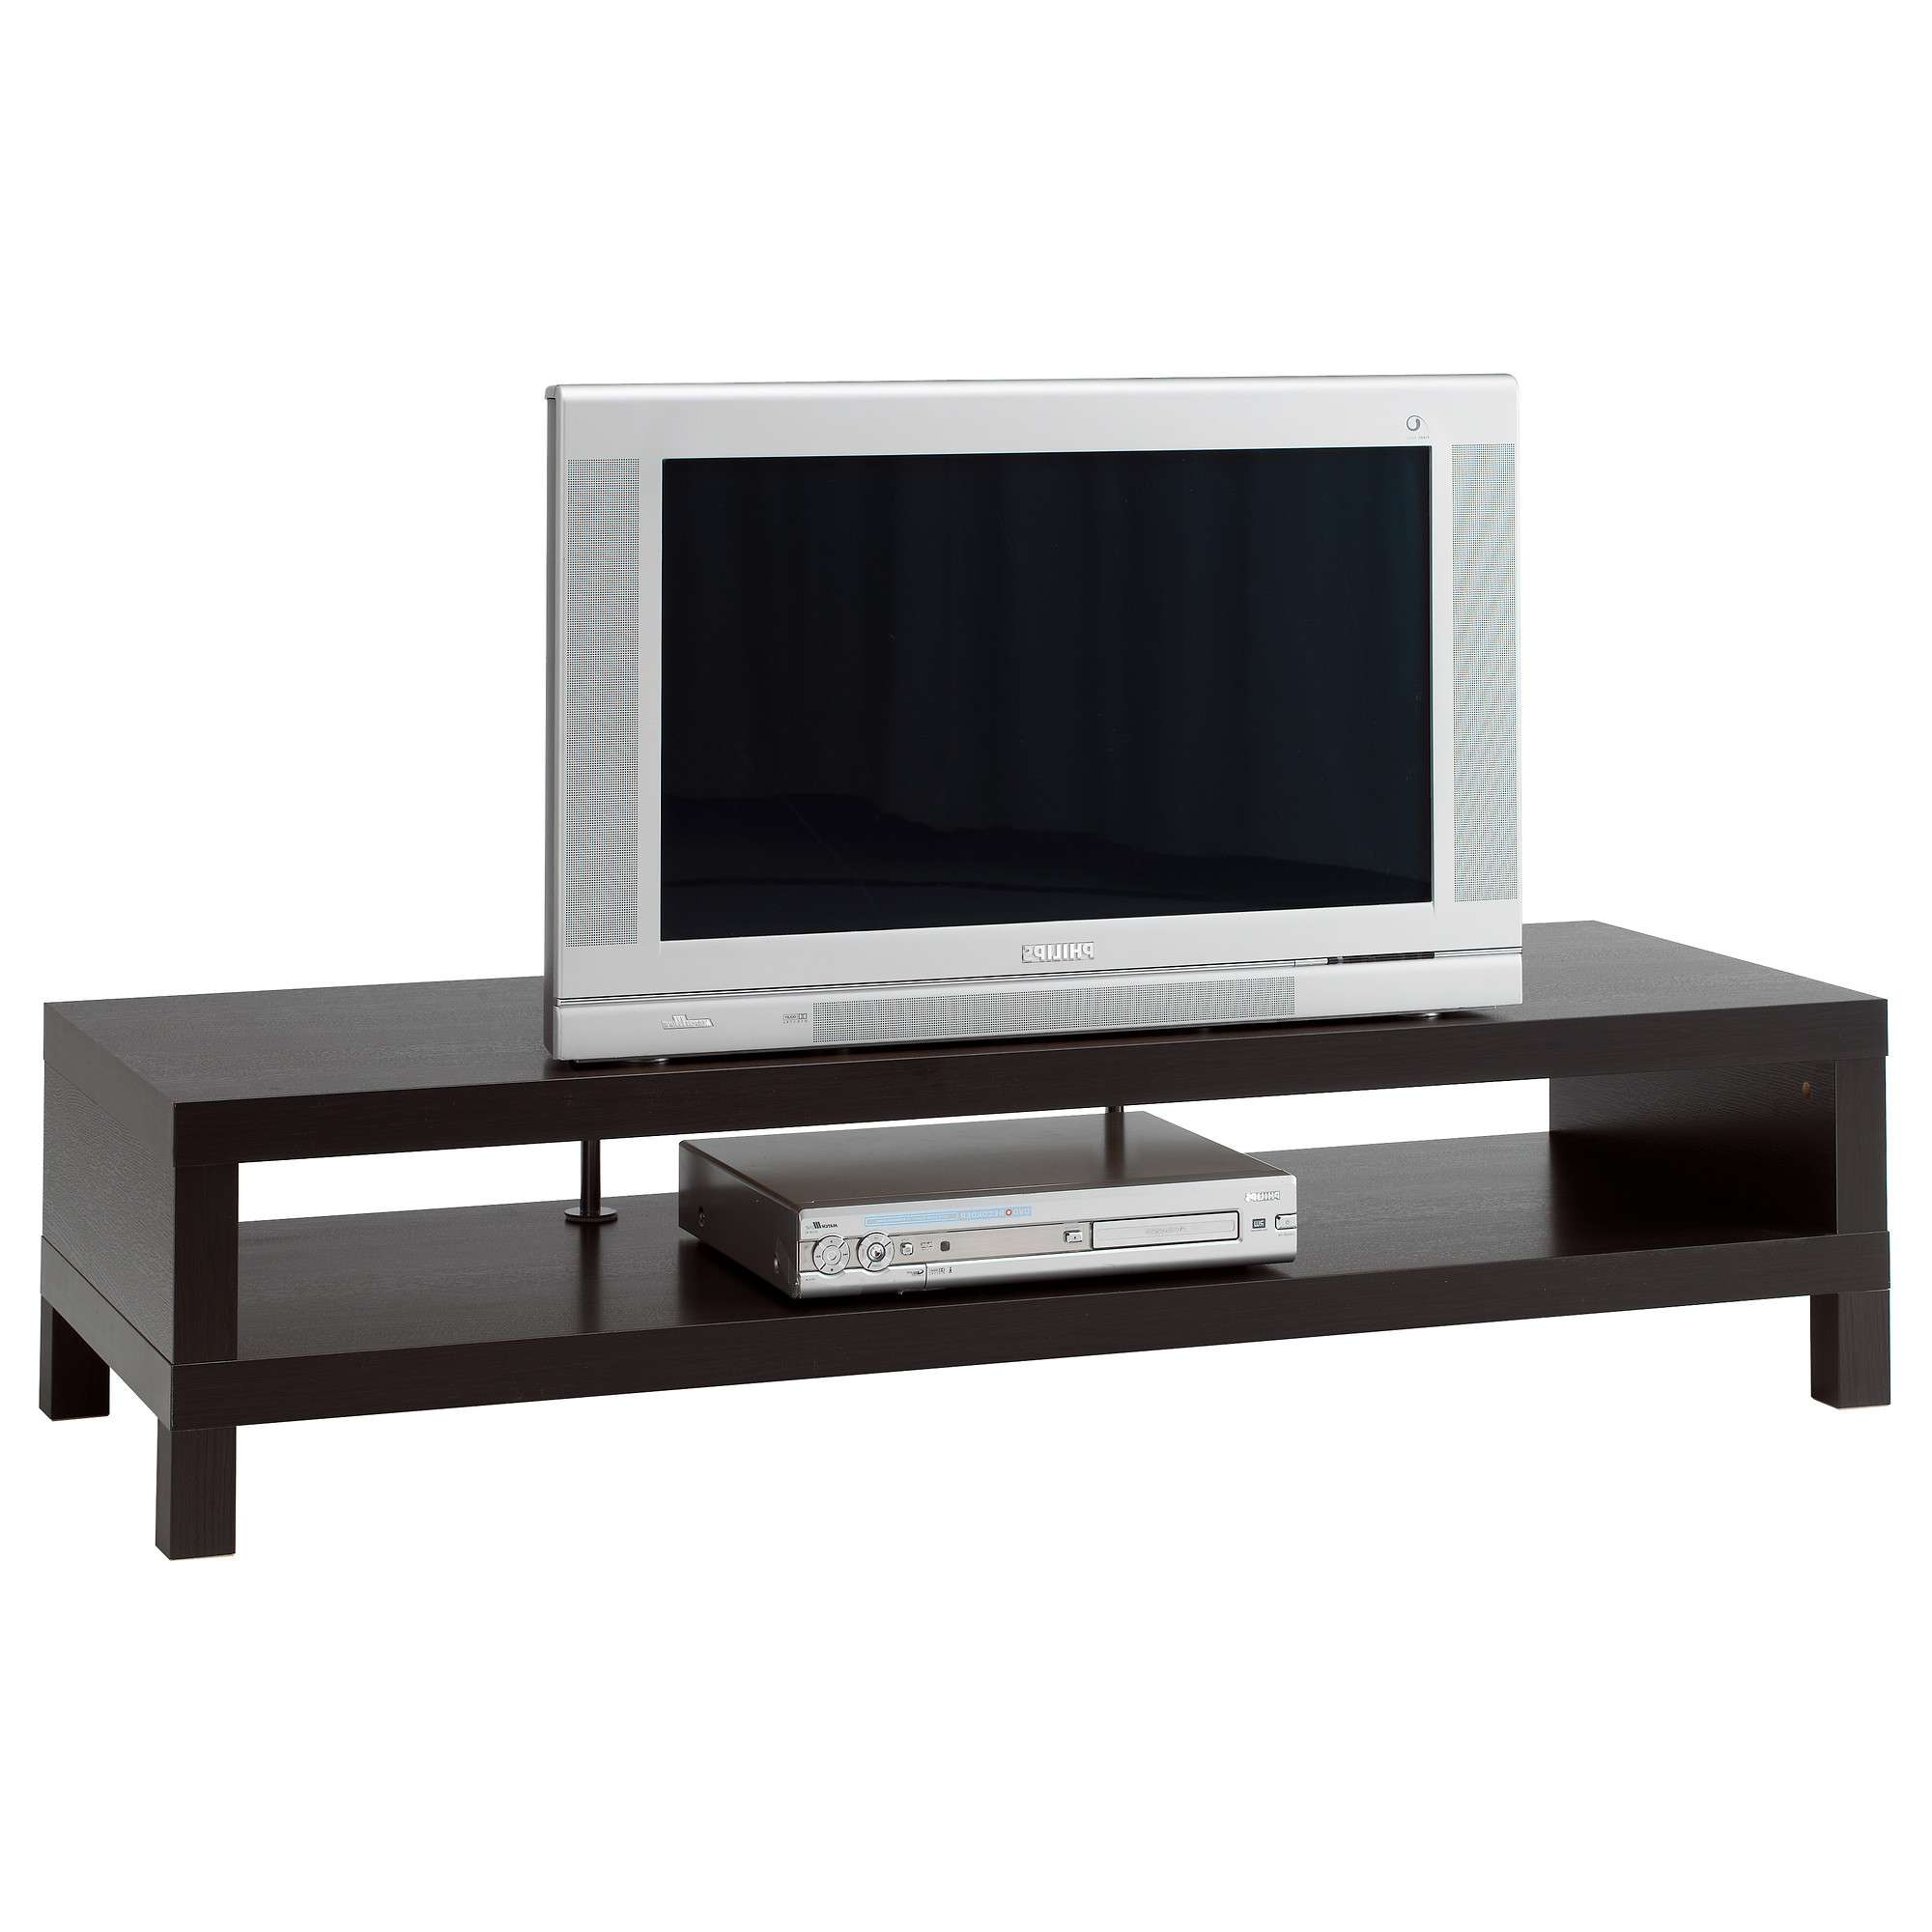 Tv Stands & Media Units   Ikea Ireland – Dublin For Cream Tv Cabinets (View 20 of 20)